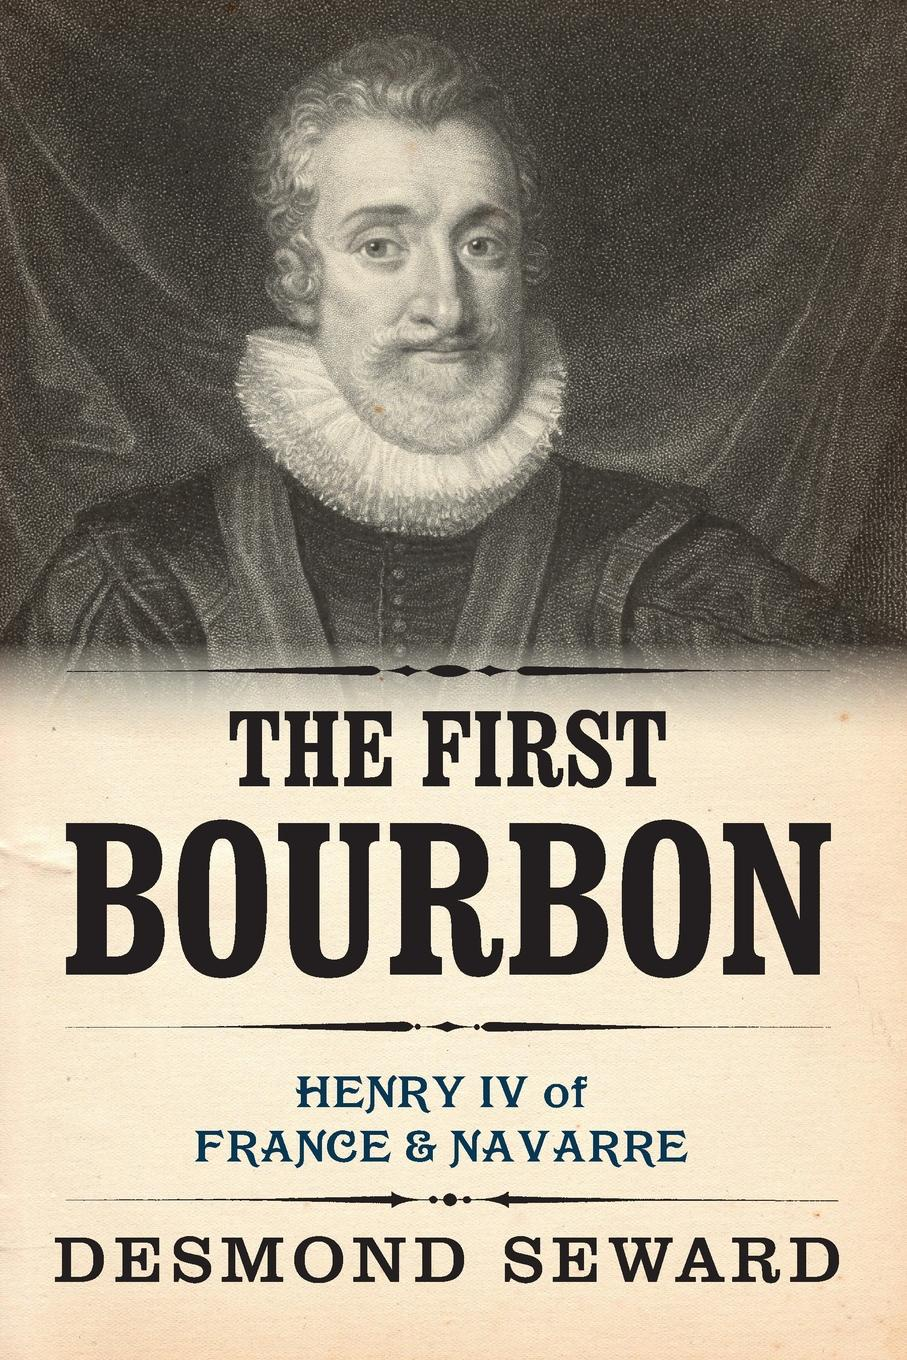 Desmond Seward The First Bourbon. Henry IV of France & Navarre perfect french country inspirational interiors from rural france